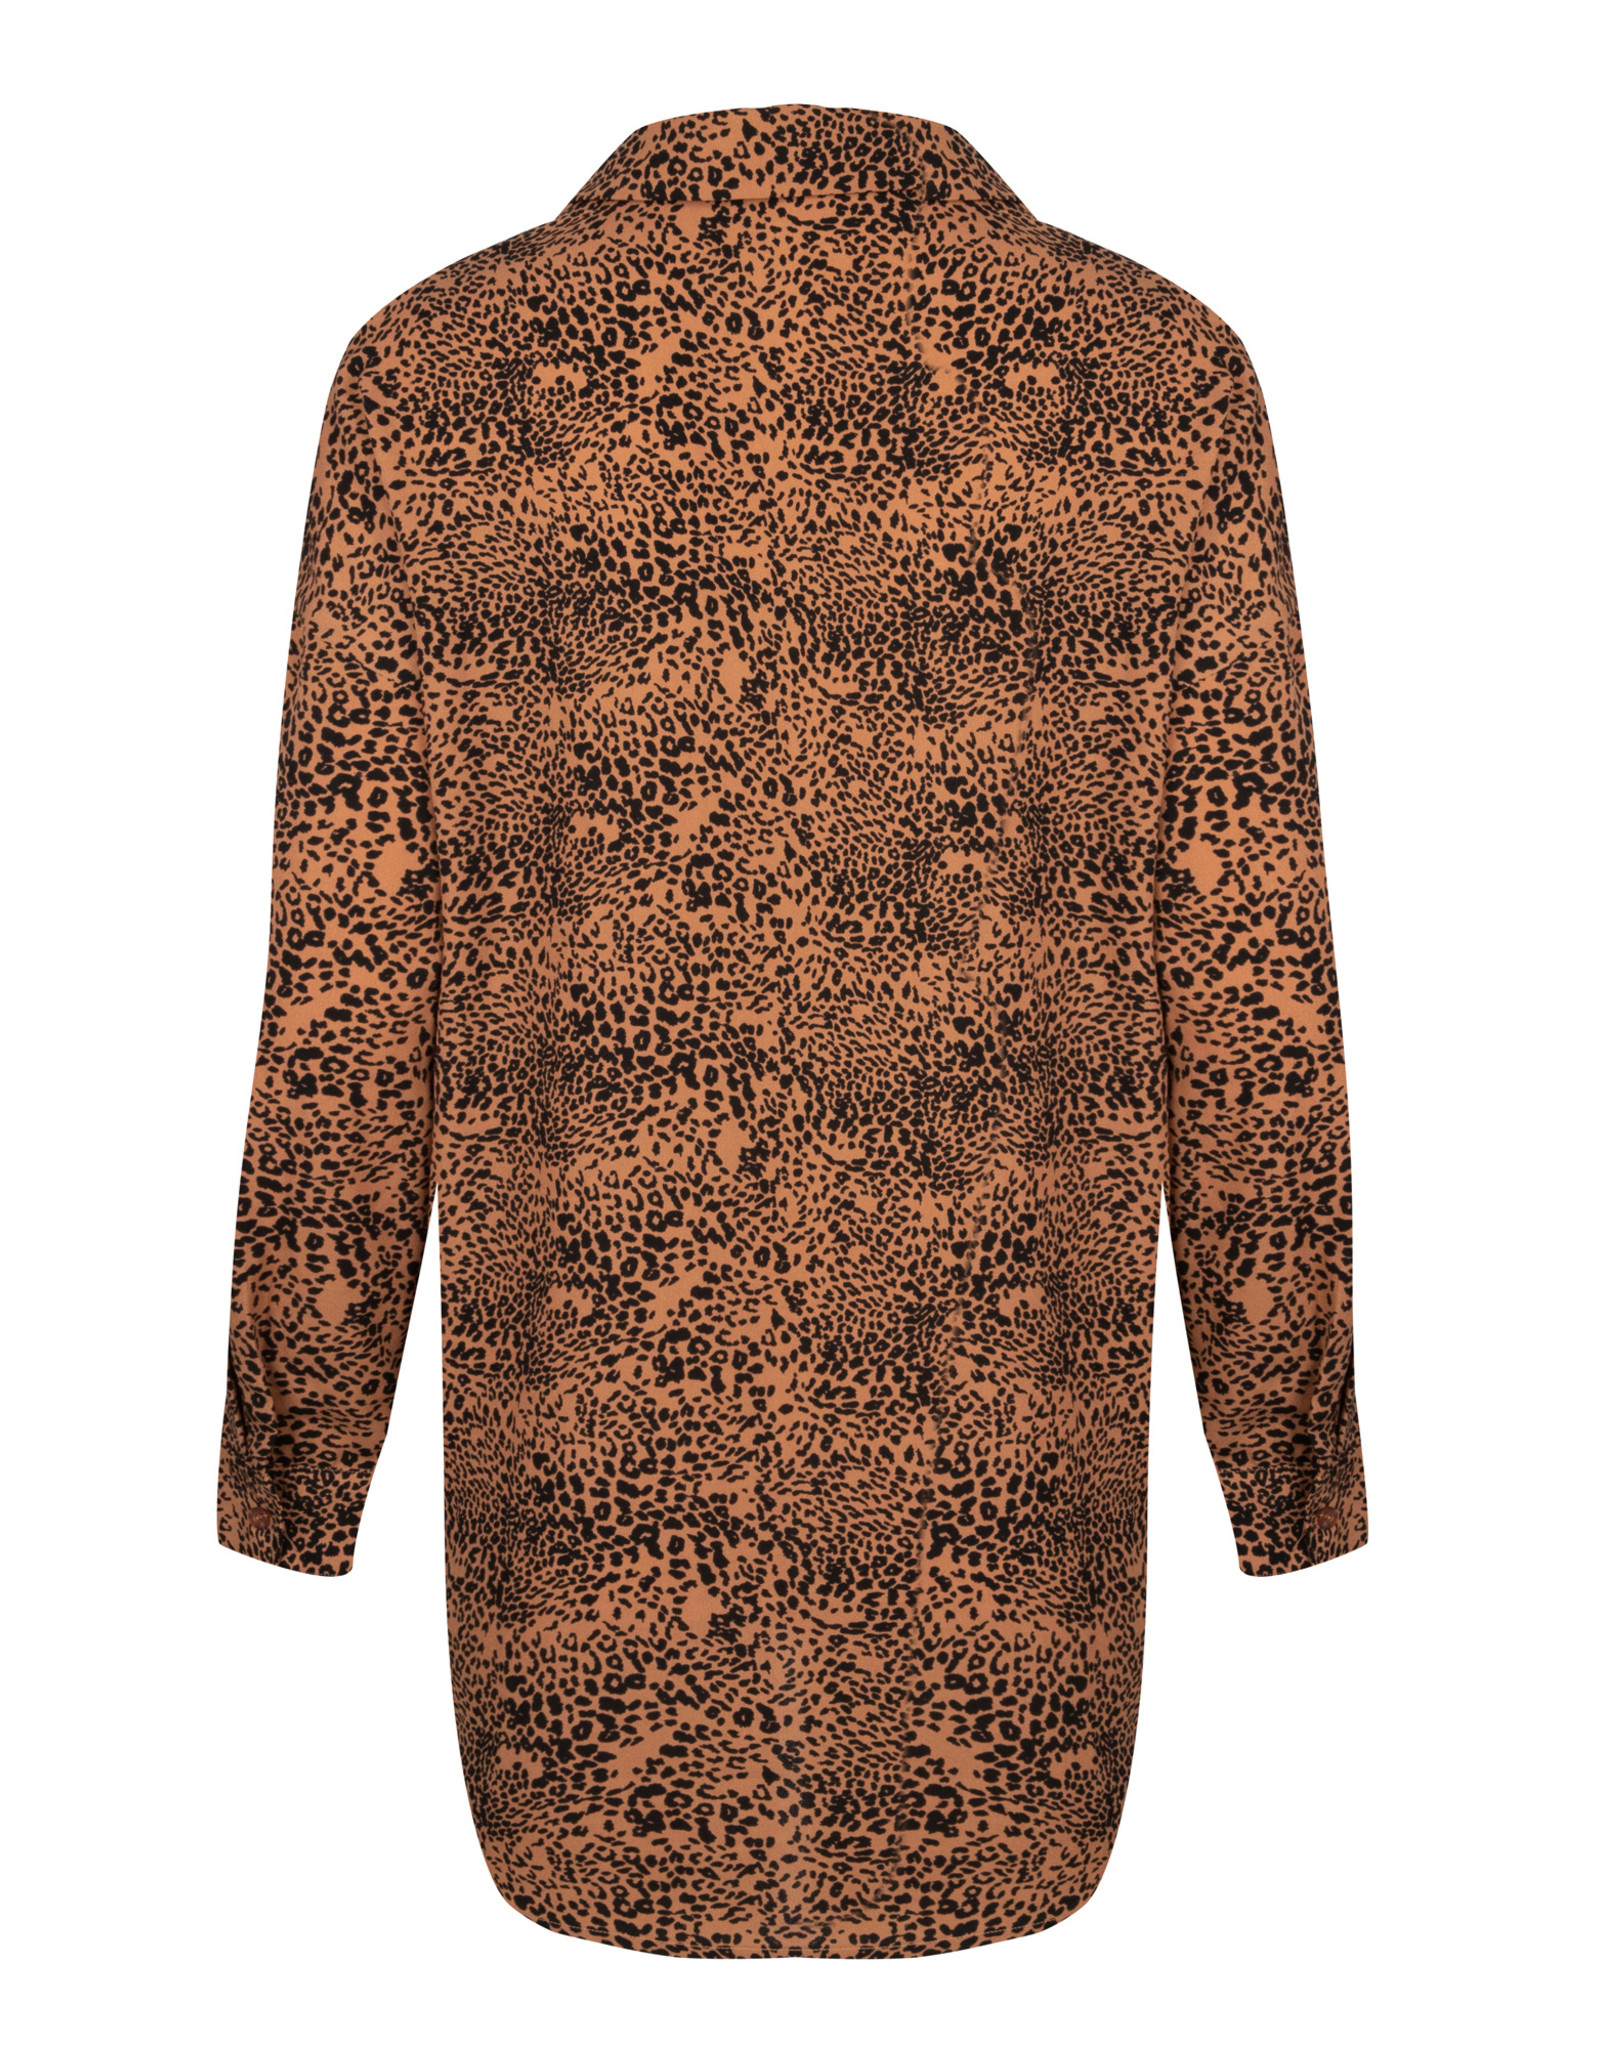 Ydence Blouse - Amber